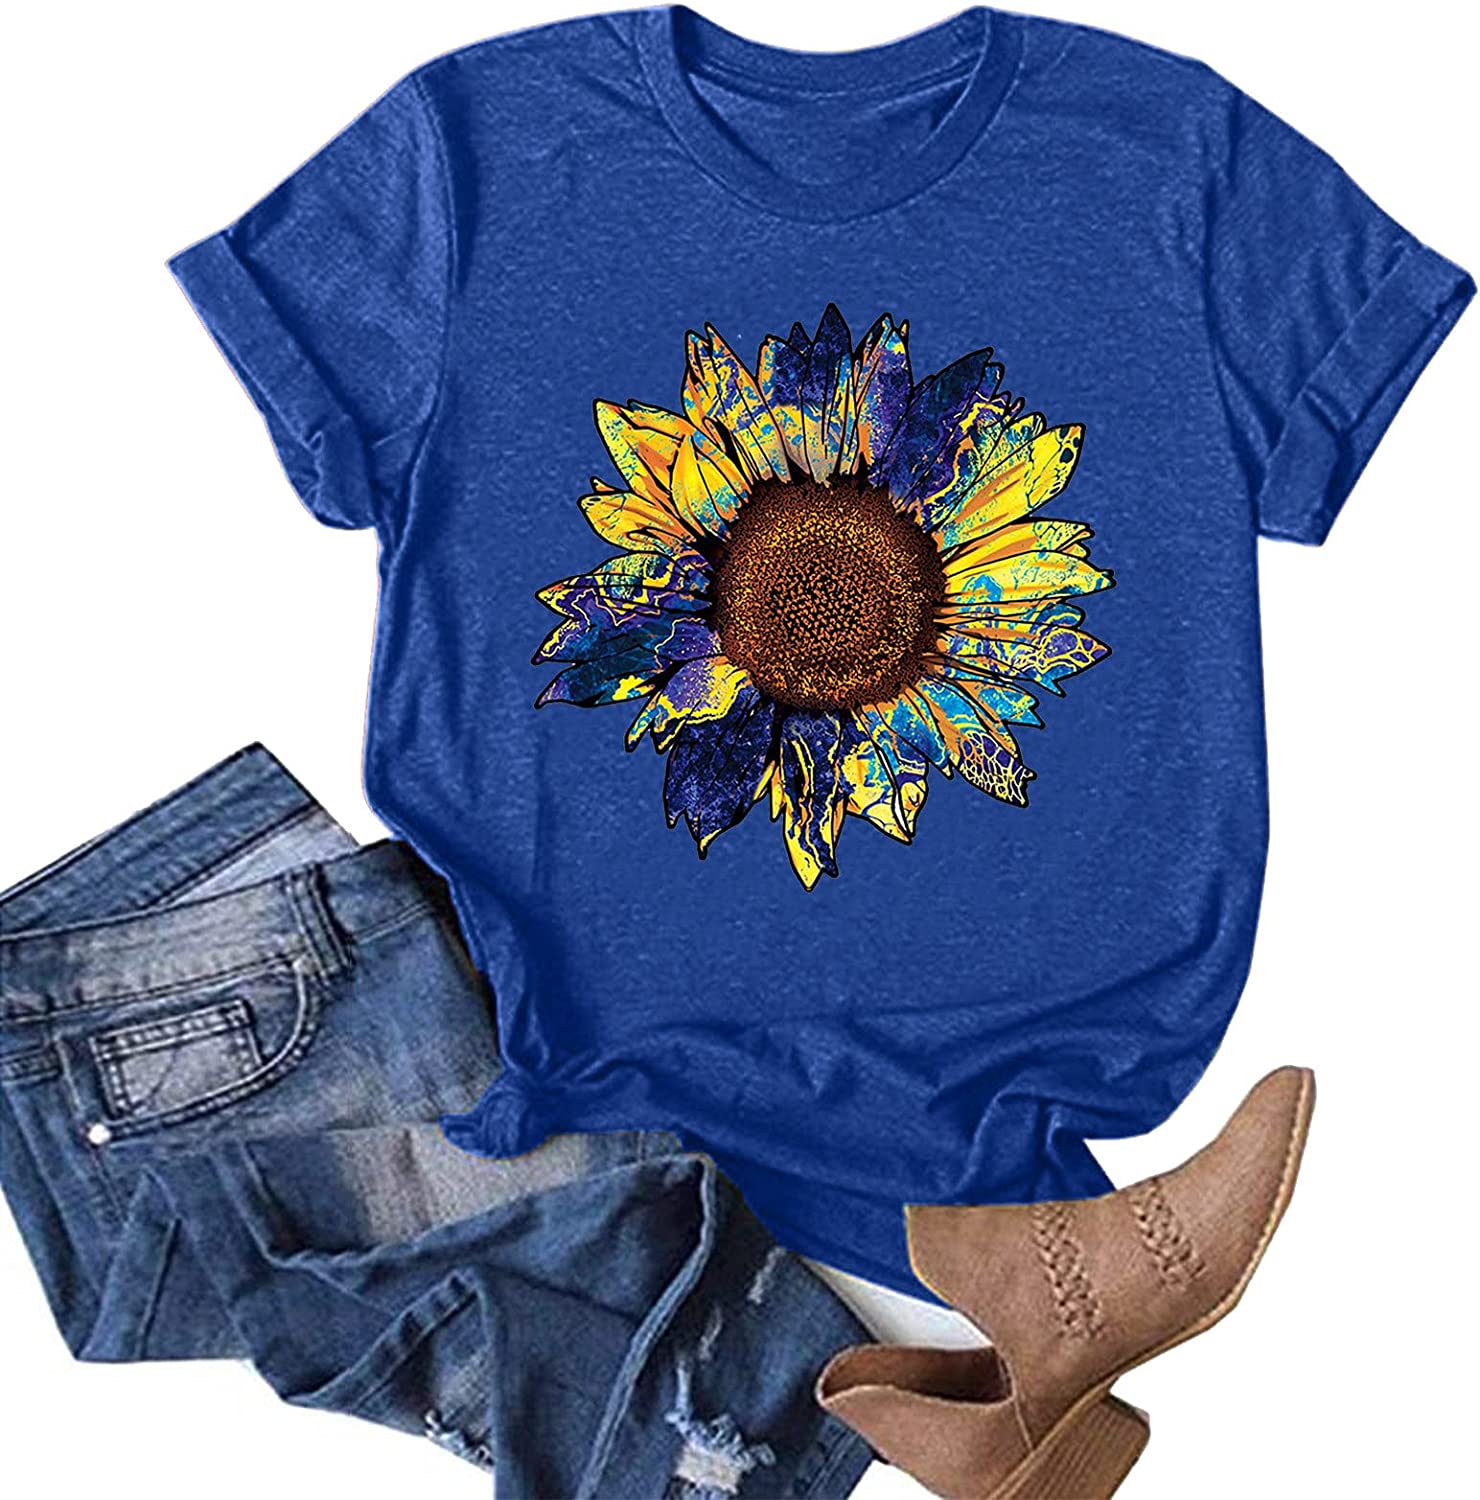 AODONG Womens Summer Tops, Women Loose fit Short Sleeve Sunflower Print Basic Blouses Tunic Tees Funny Graphic T-Shirts